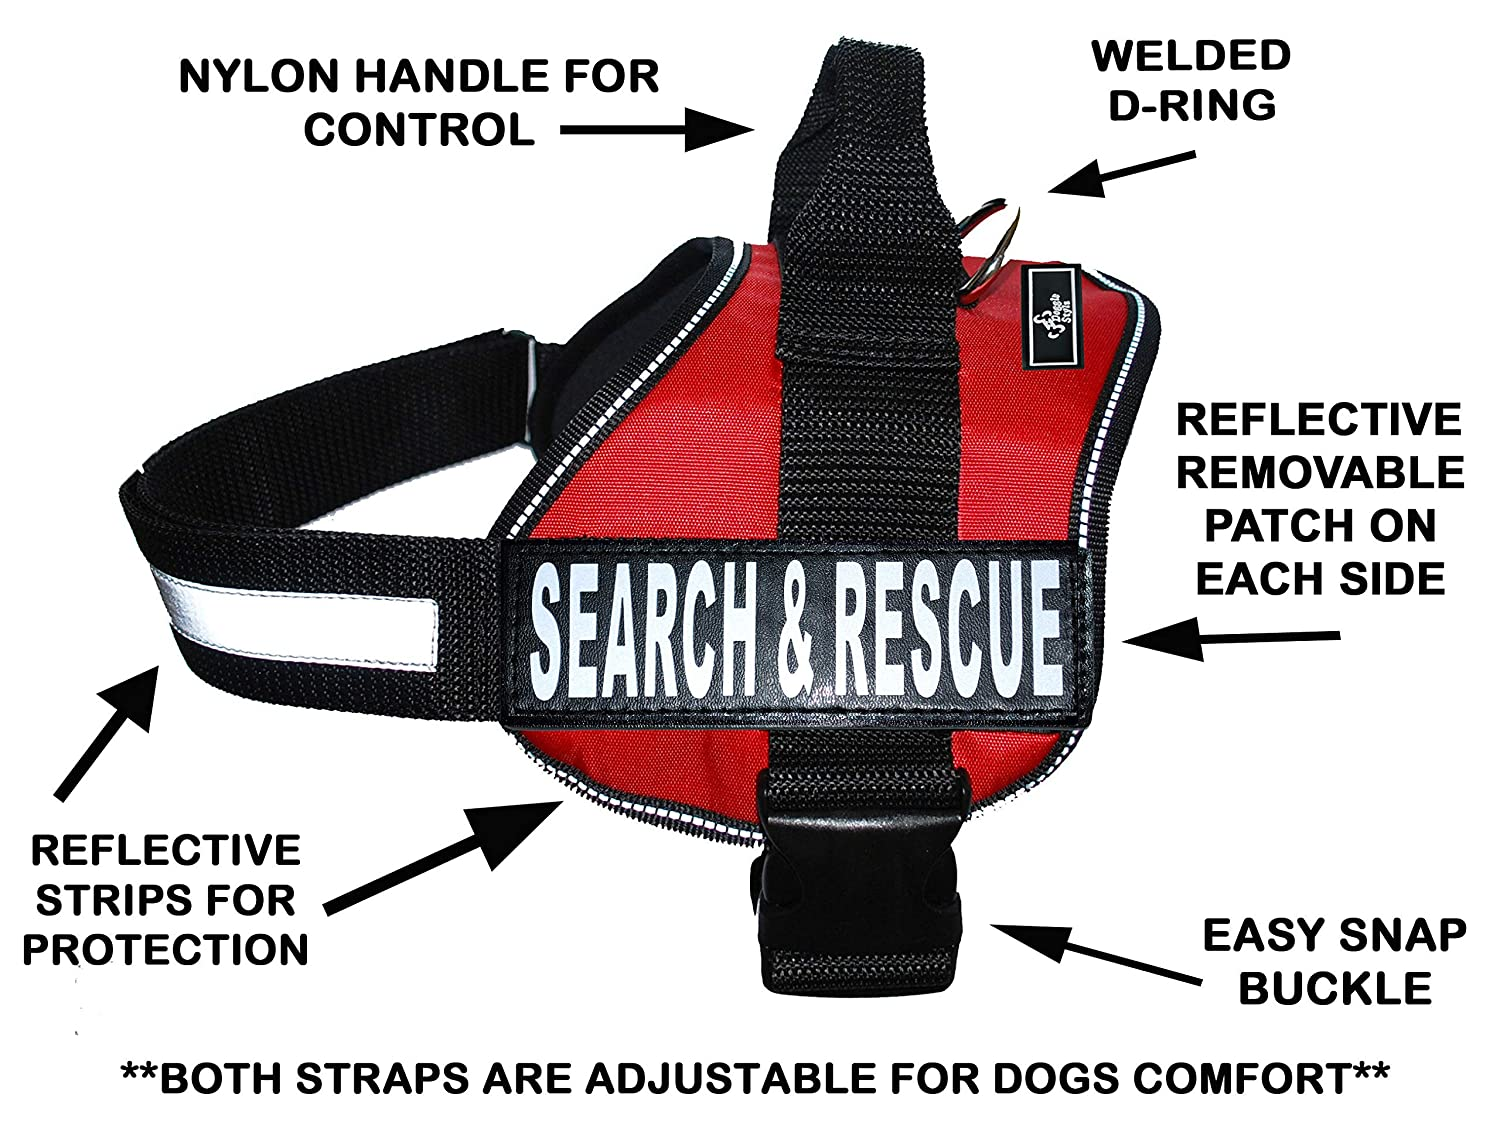 Red Girth 30-42\ Red Girth 30-42\ Search & Rescue Harness Vest Cool Comfort Nylon for Dogs Small Medium Large Girth Purchase Comes with 2 Reflective Search & Rescue Removable Patches. Please Measure Your Dog Before Ordering.